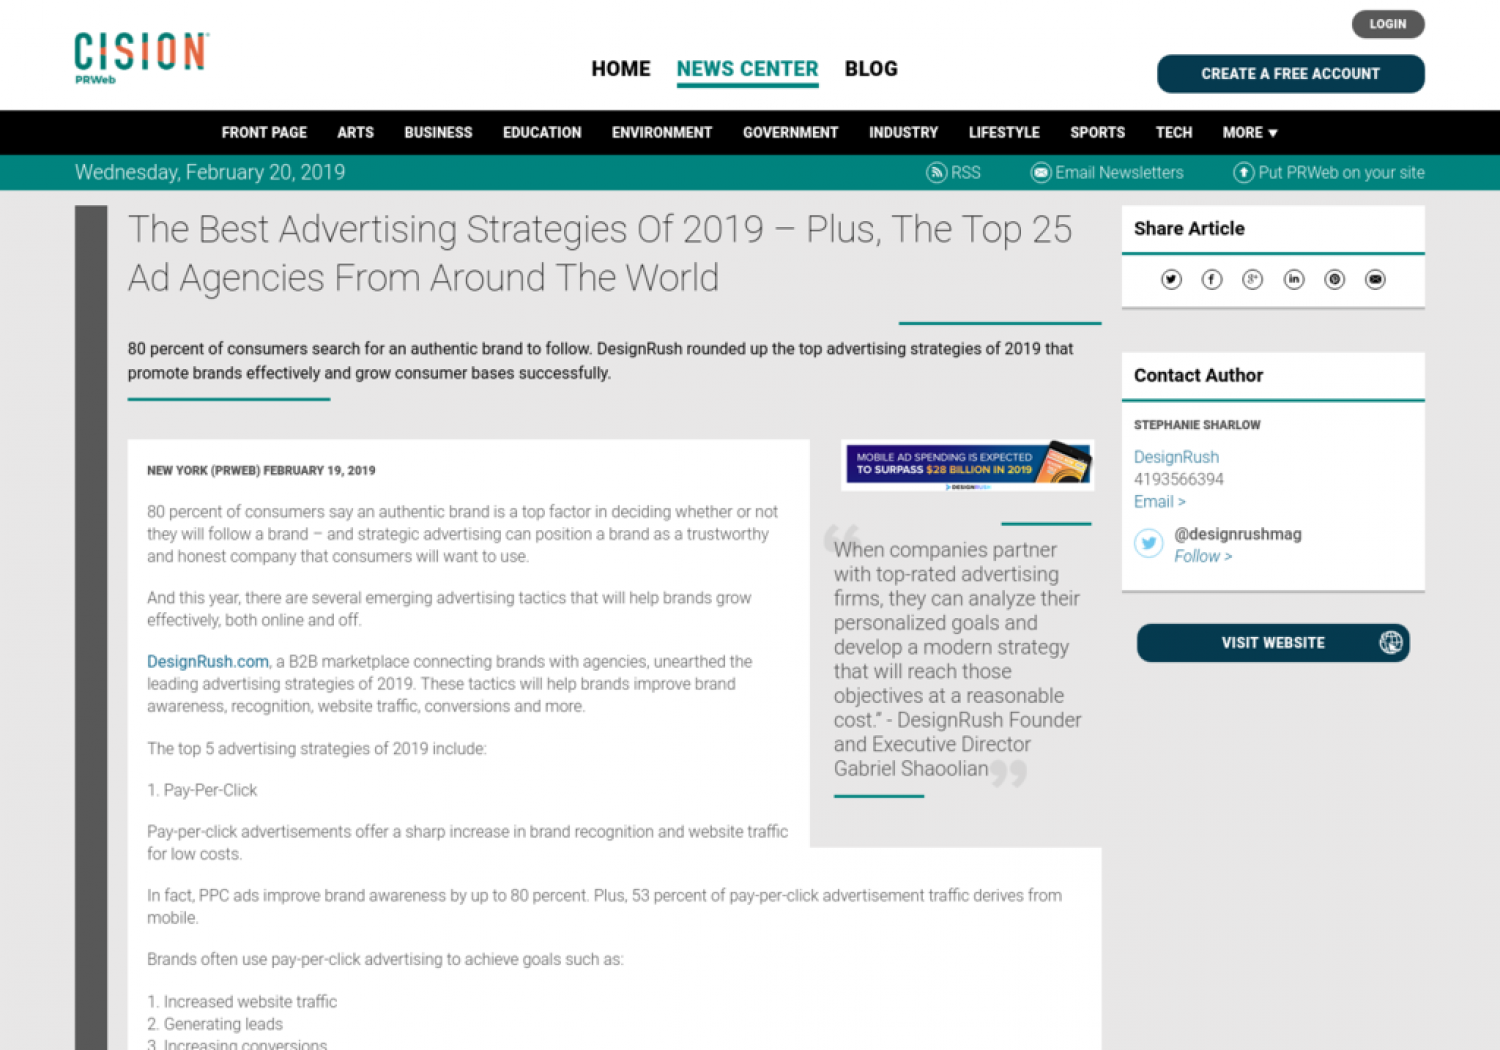 The Best Advertising Strategies Of 2019 – Plus, The Top 25 Ad Agencies From Around The World Infographic